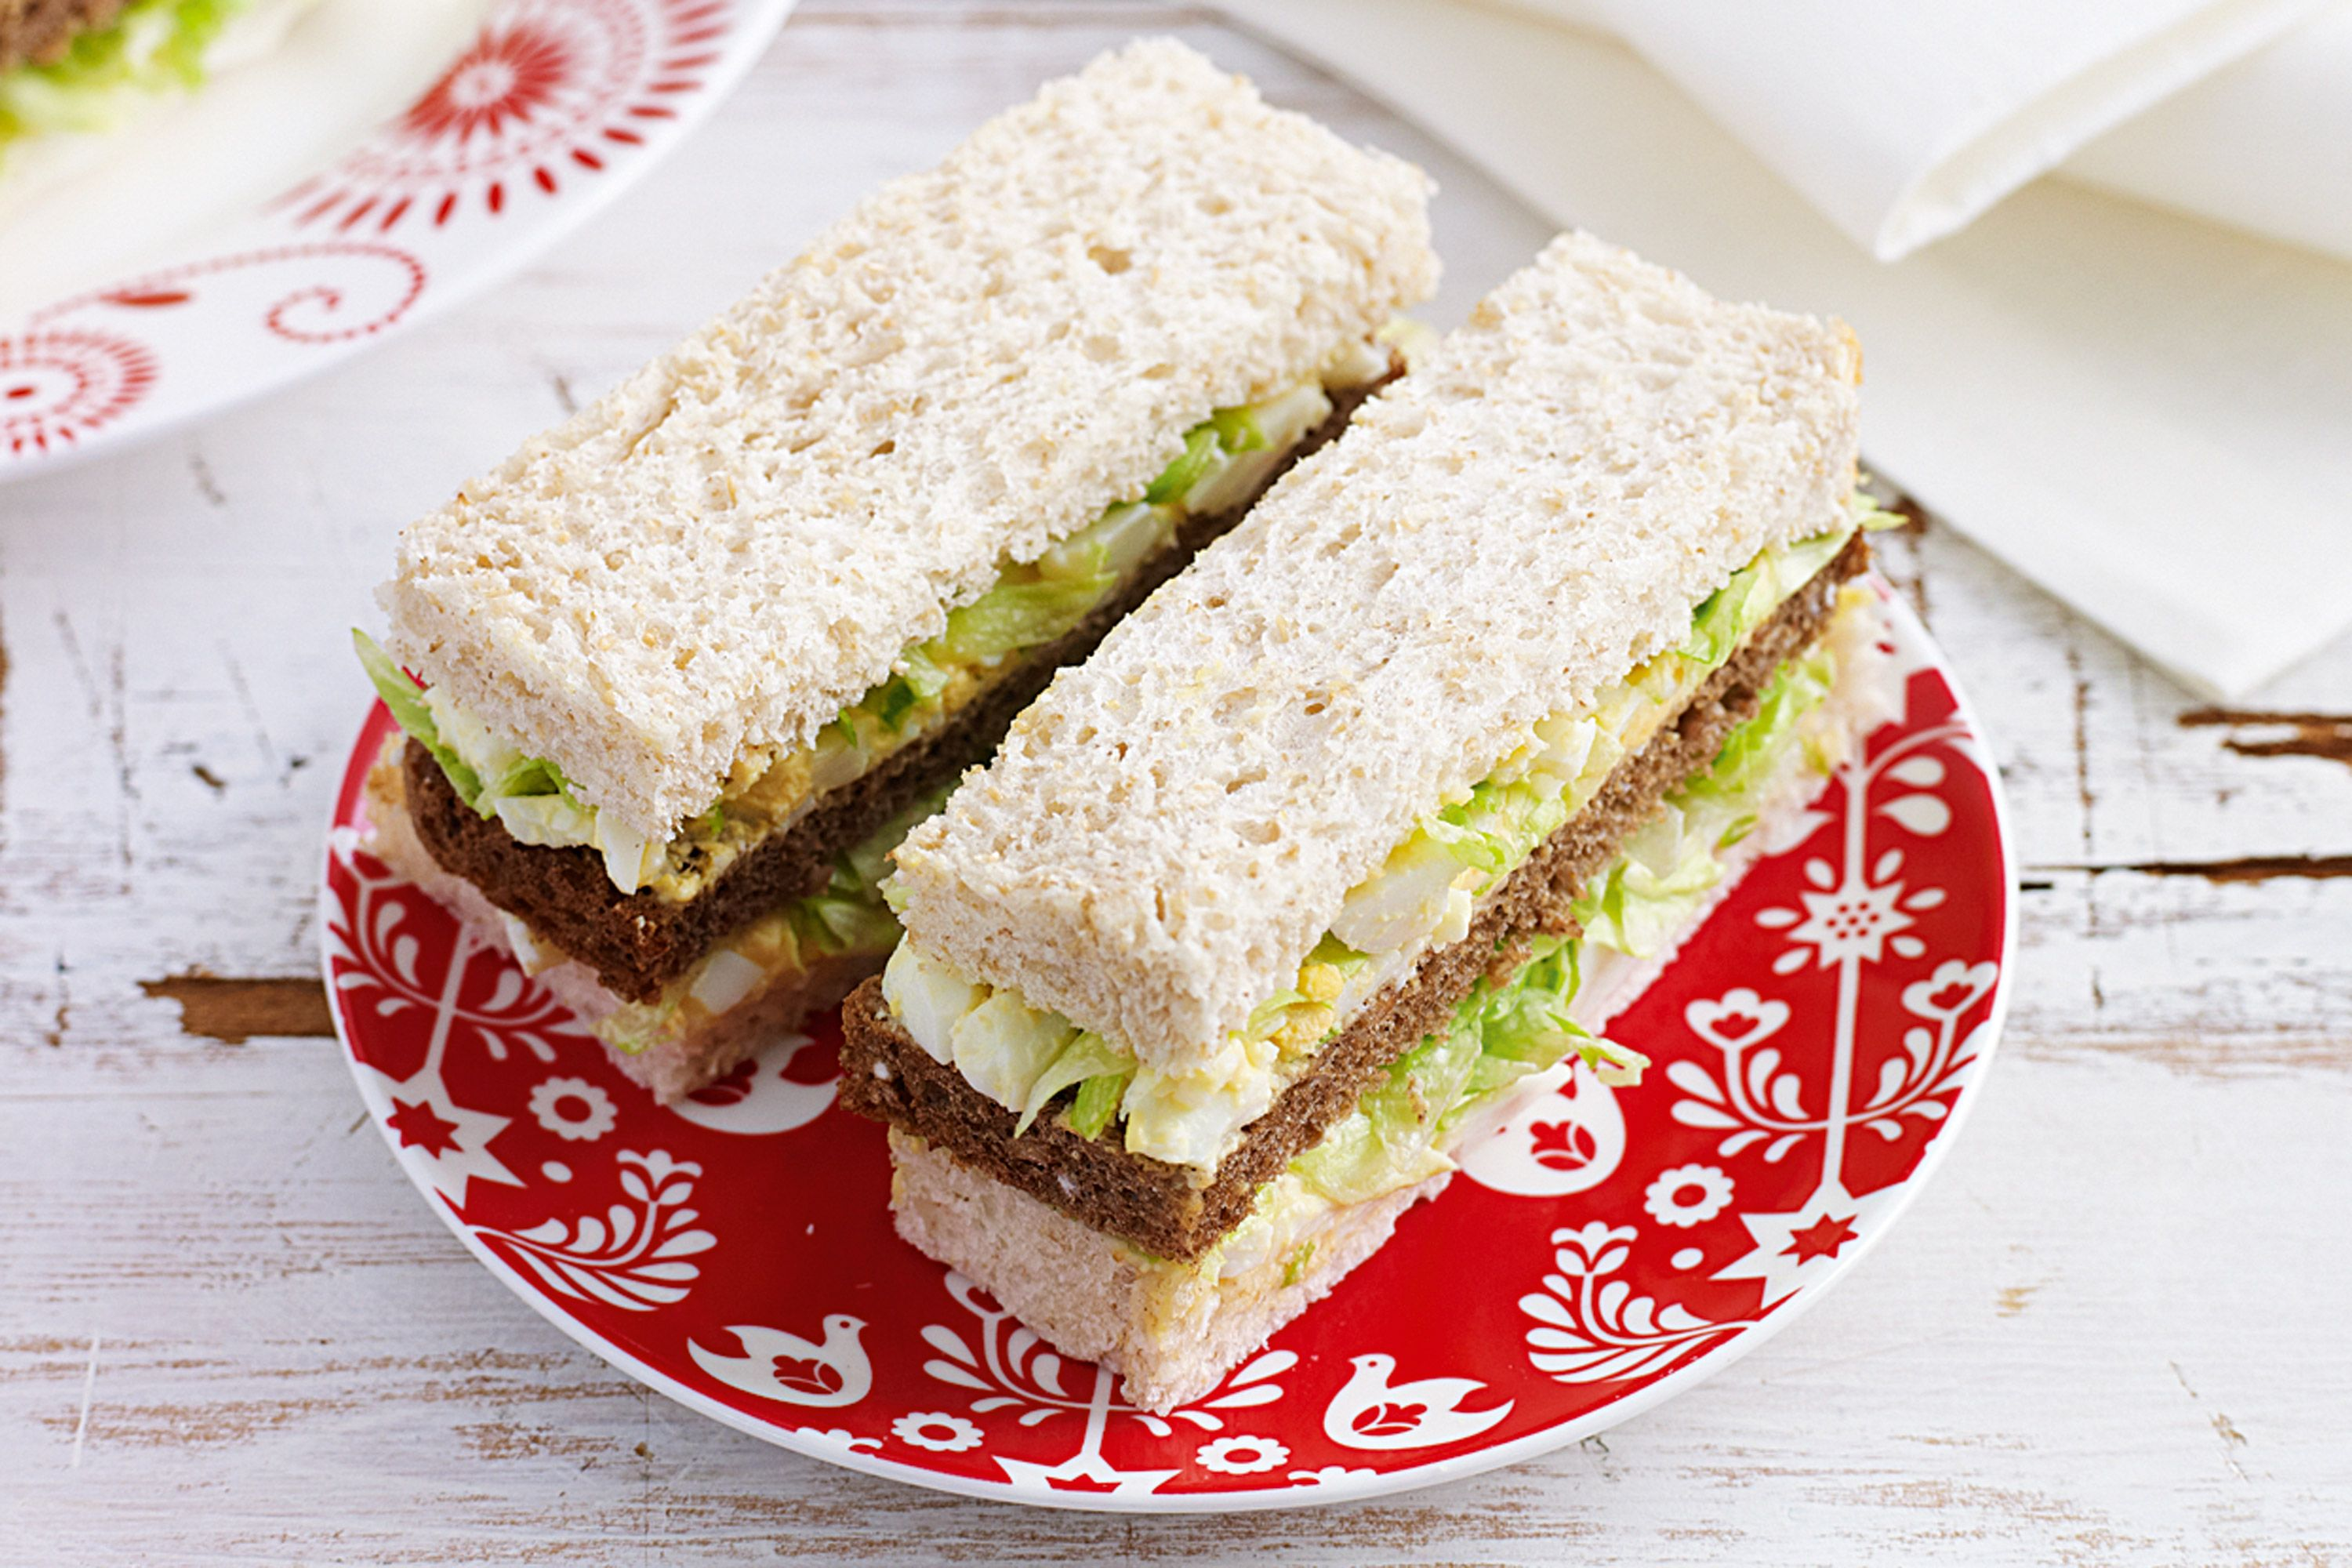 Egg and lettuce sandwiches recipes sandwiches lettuce